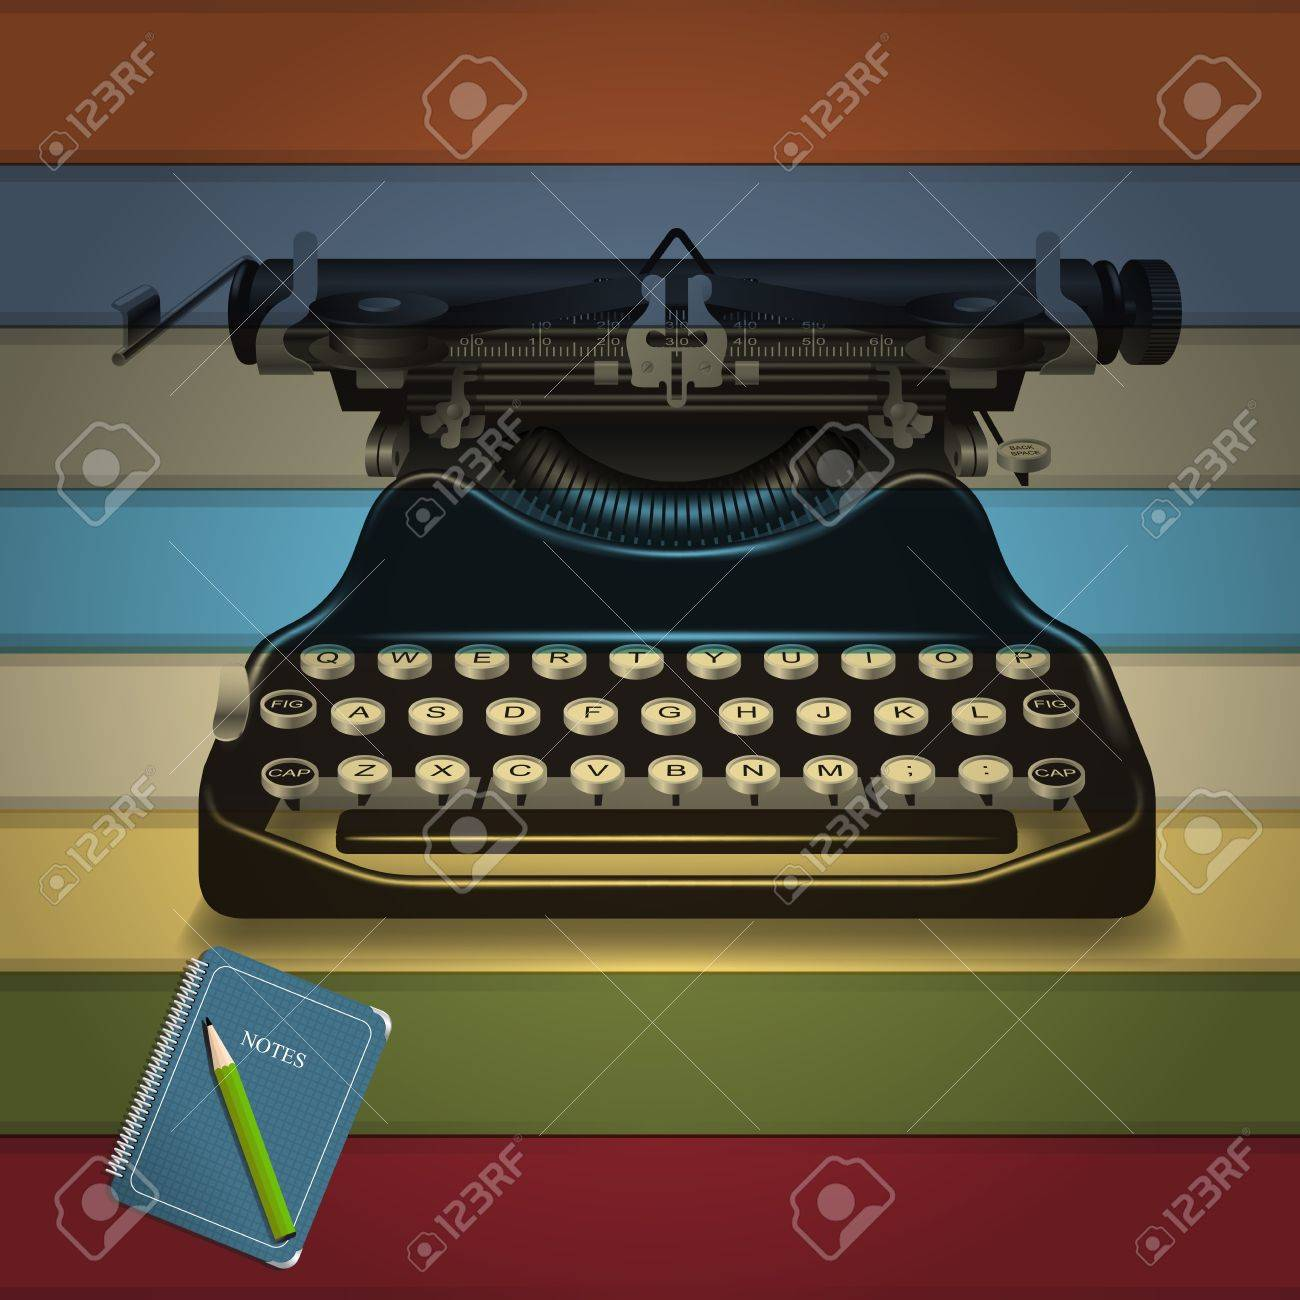 Retro Typewriter and notepad memories with colorful background Stock Vector - 14126177